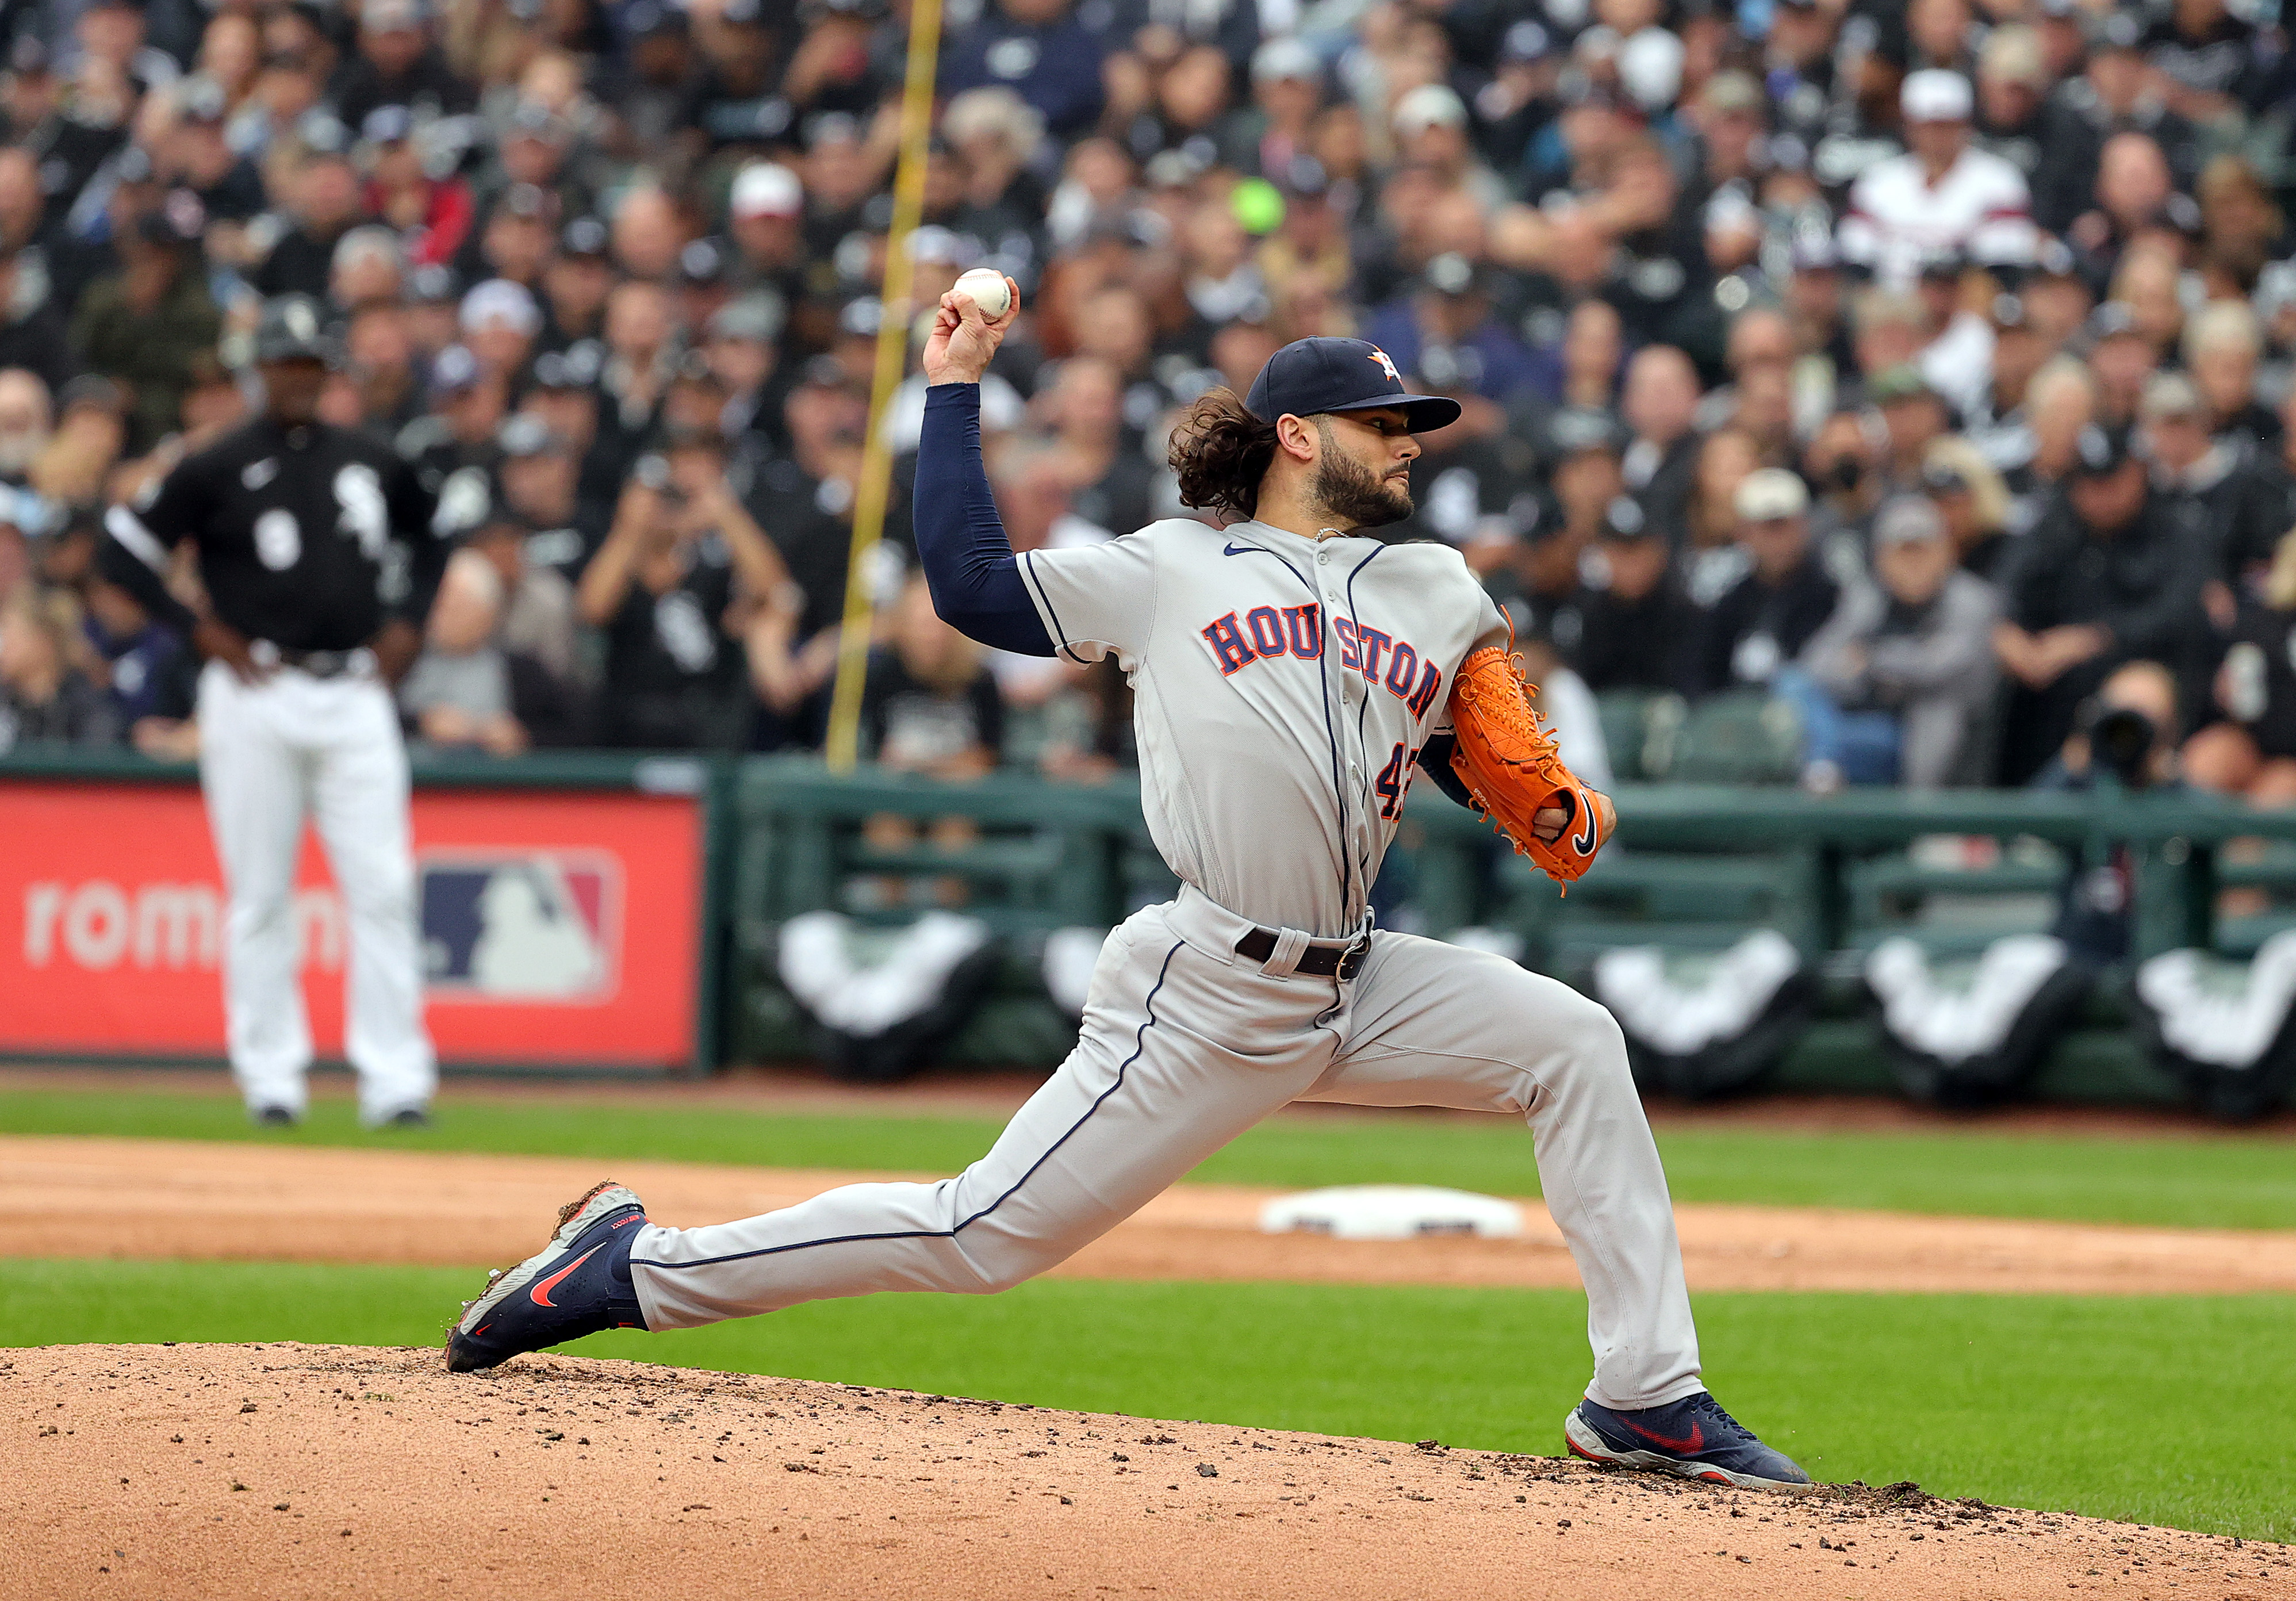 Starting pitcher Lance McCullers Jr. #43 of the Houston Astros pitches during the 2nd inning of Game 4 of the American League Division Series against the Chicago White Sox at Guaranteed Rate Field on October 12, 2021 in Chicago, Illinois.